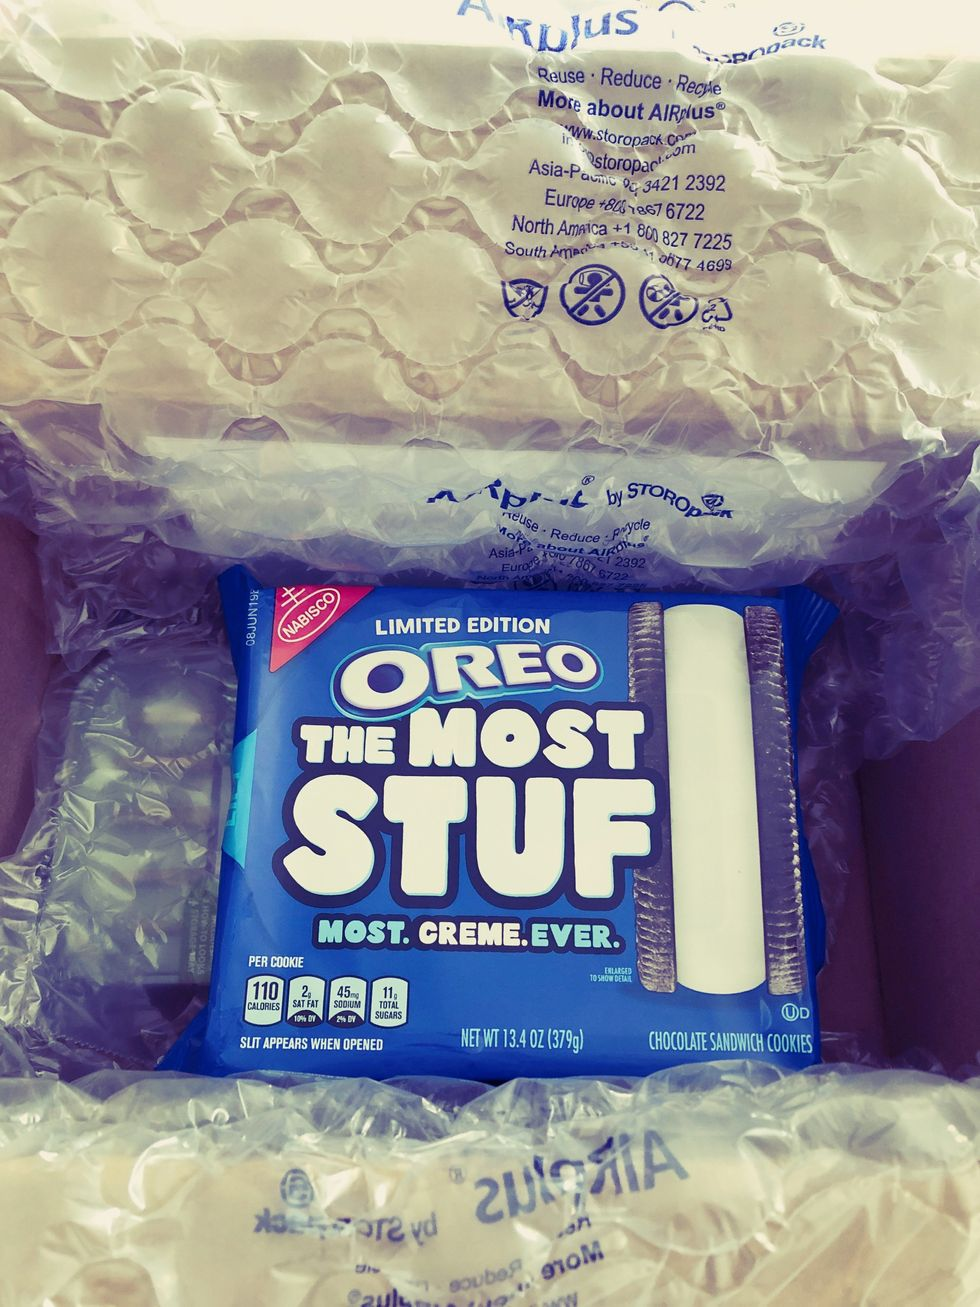 Oreo Got It Right With 'The Most Stuf' Oreos